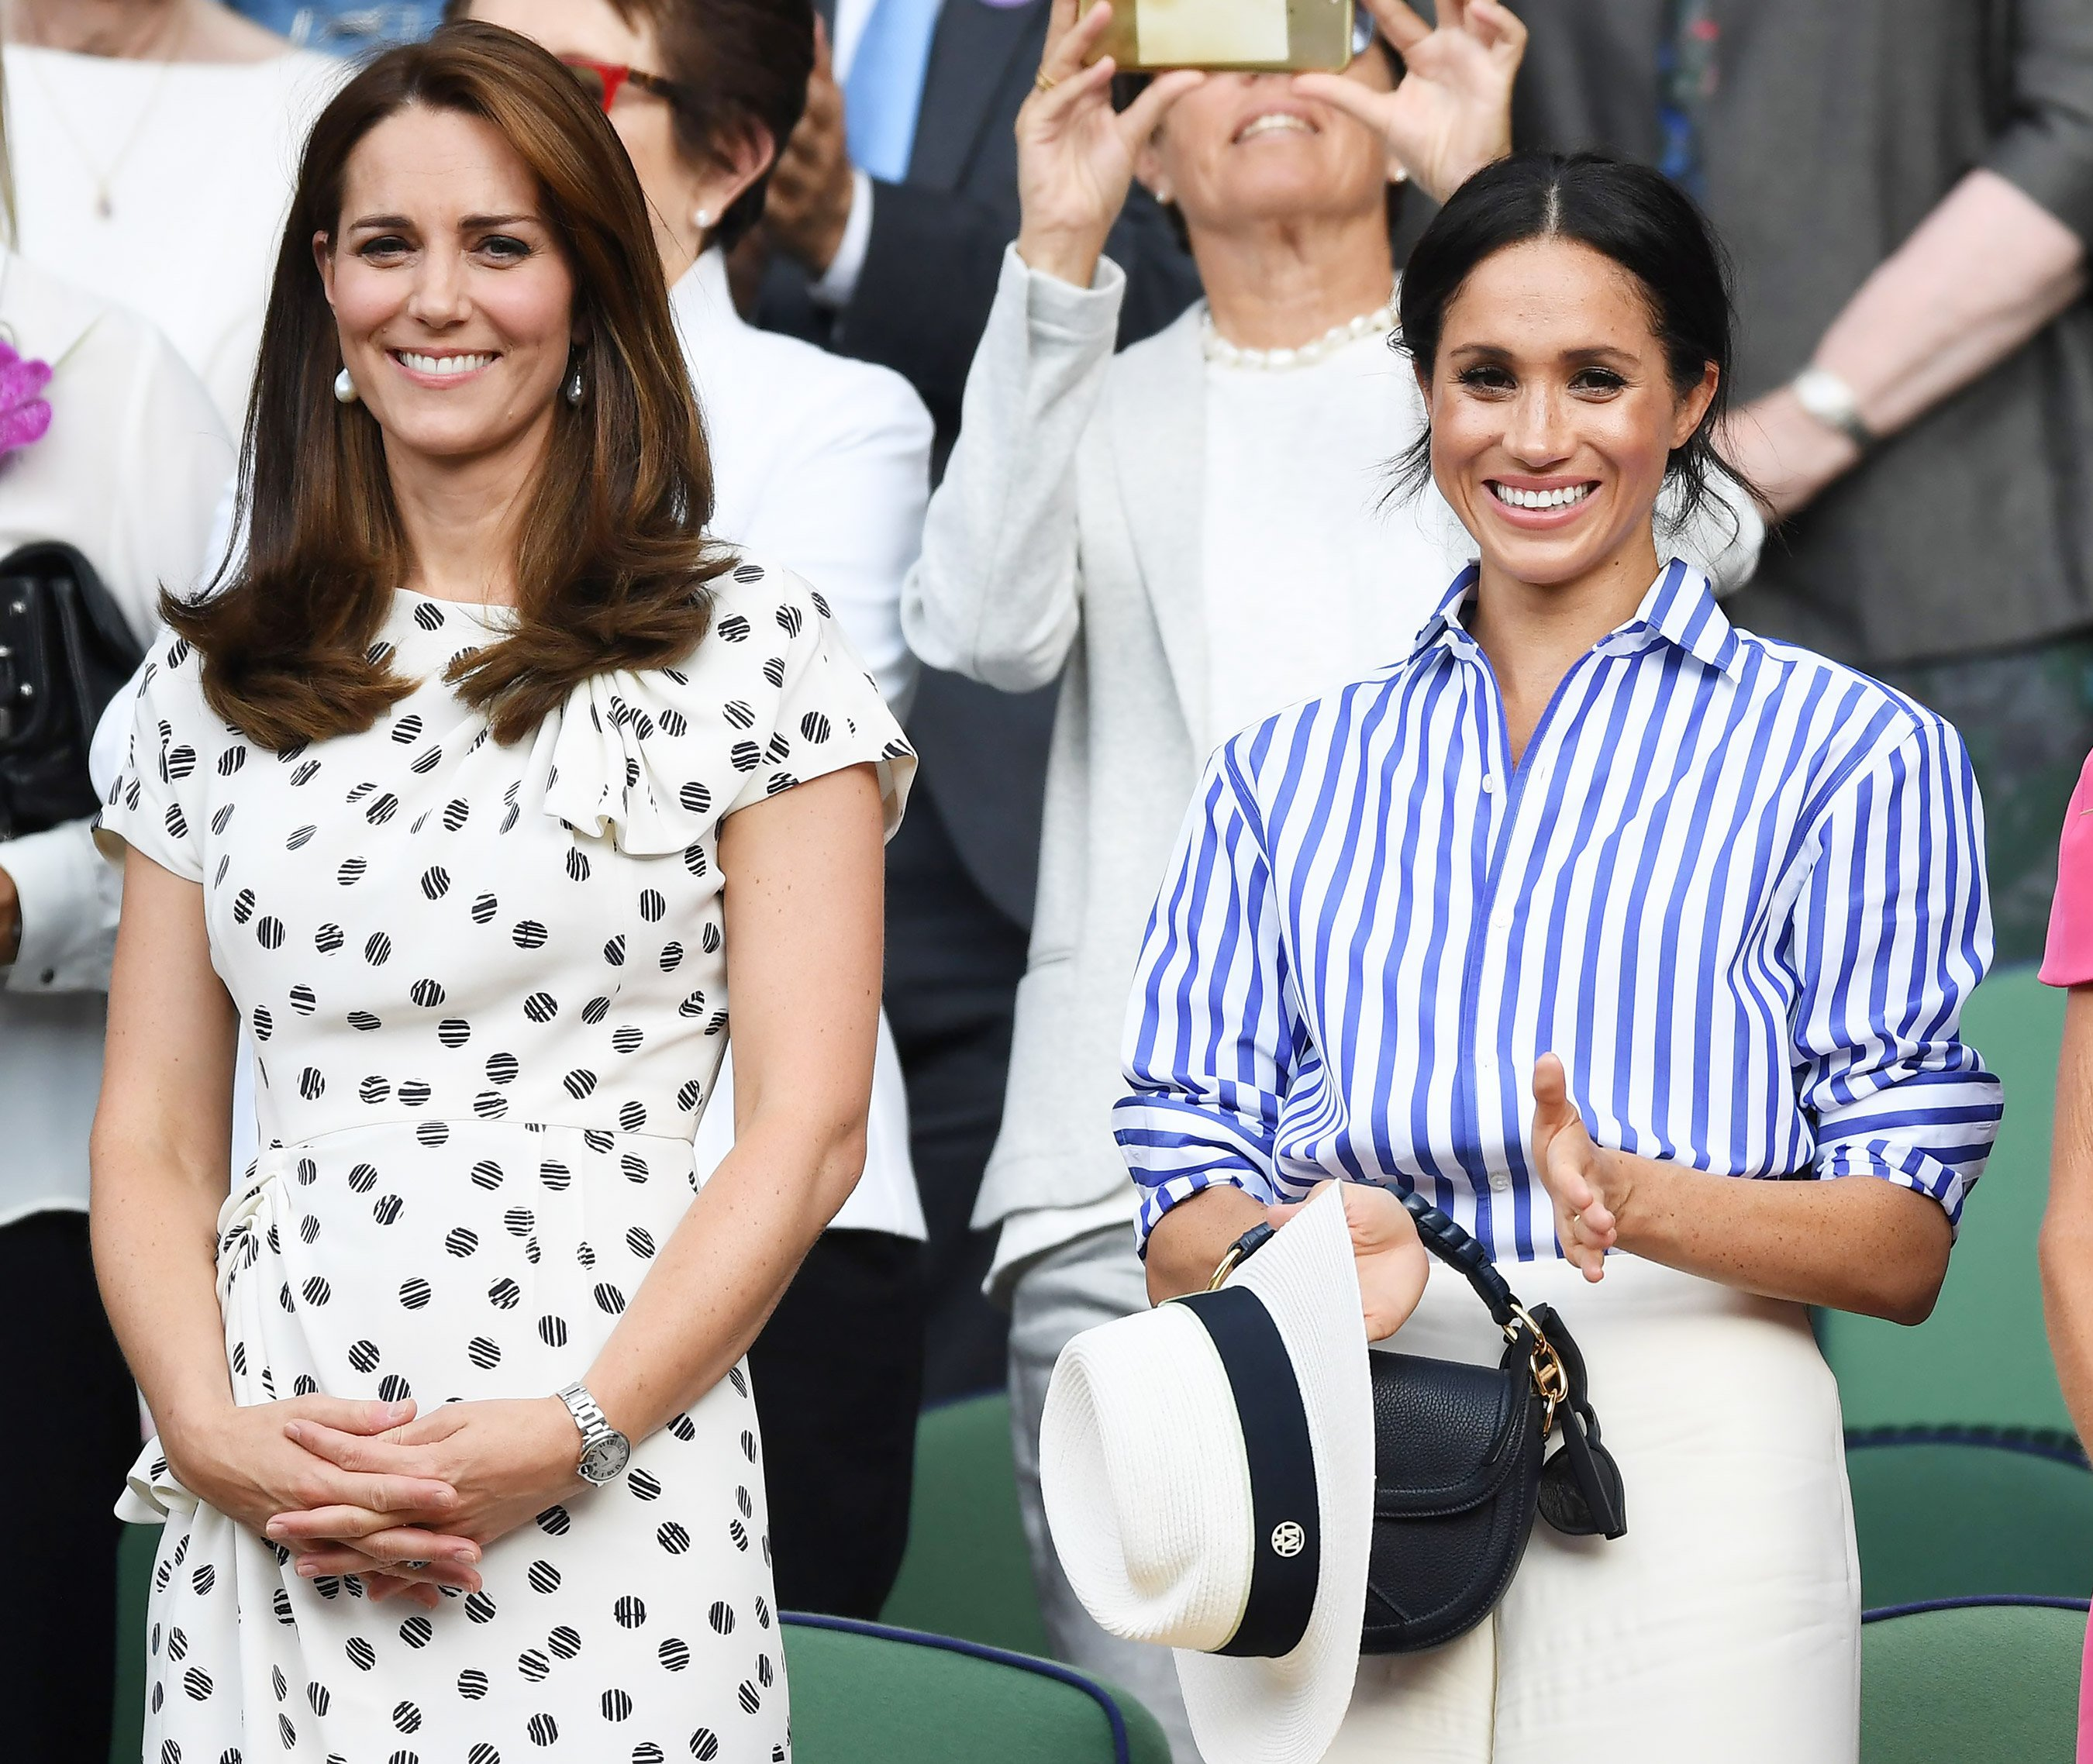 Meghan Markle Is 'Demanding But Never Rude,' Dad Says Amid Reports of Kate Middleton Feud